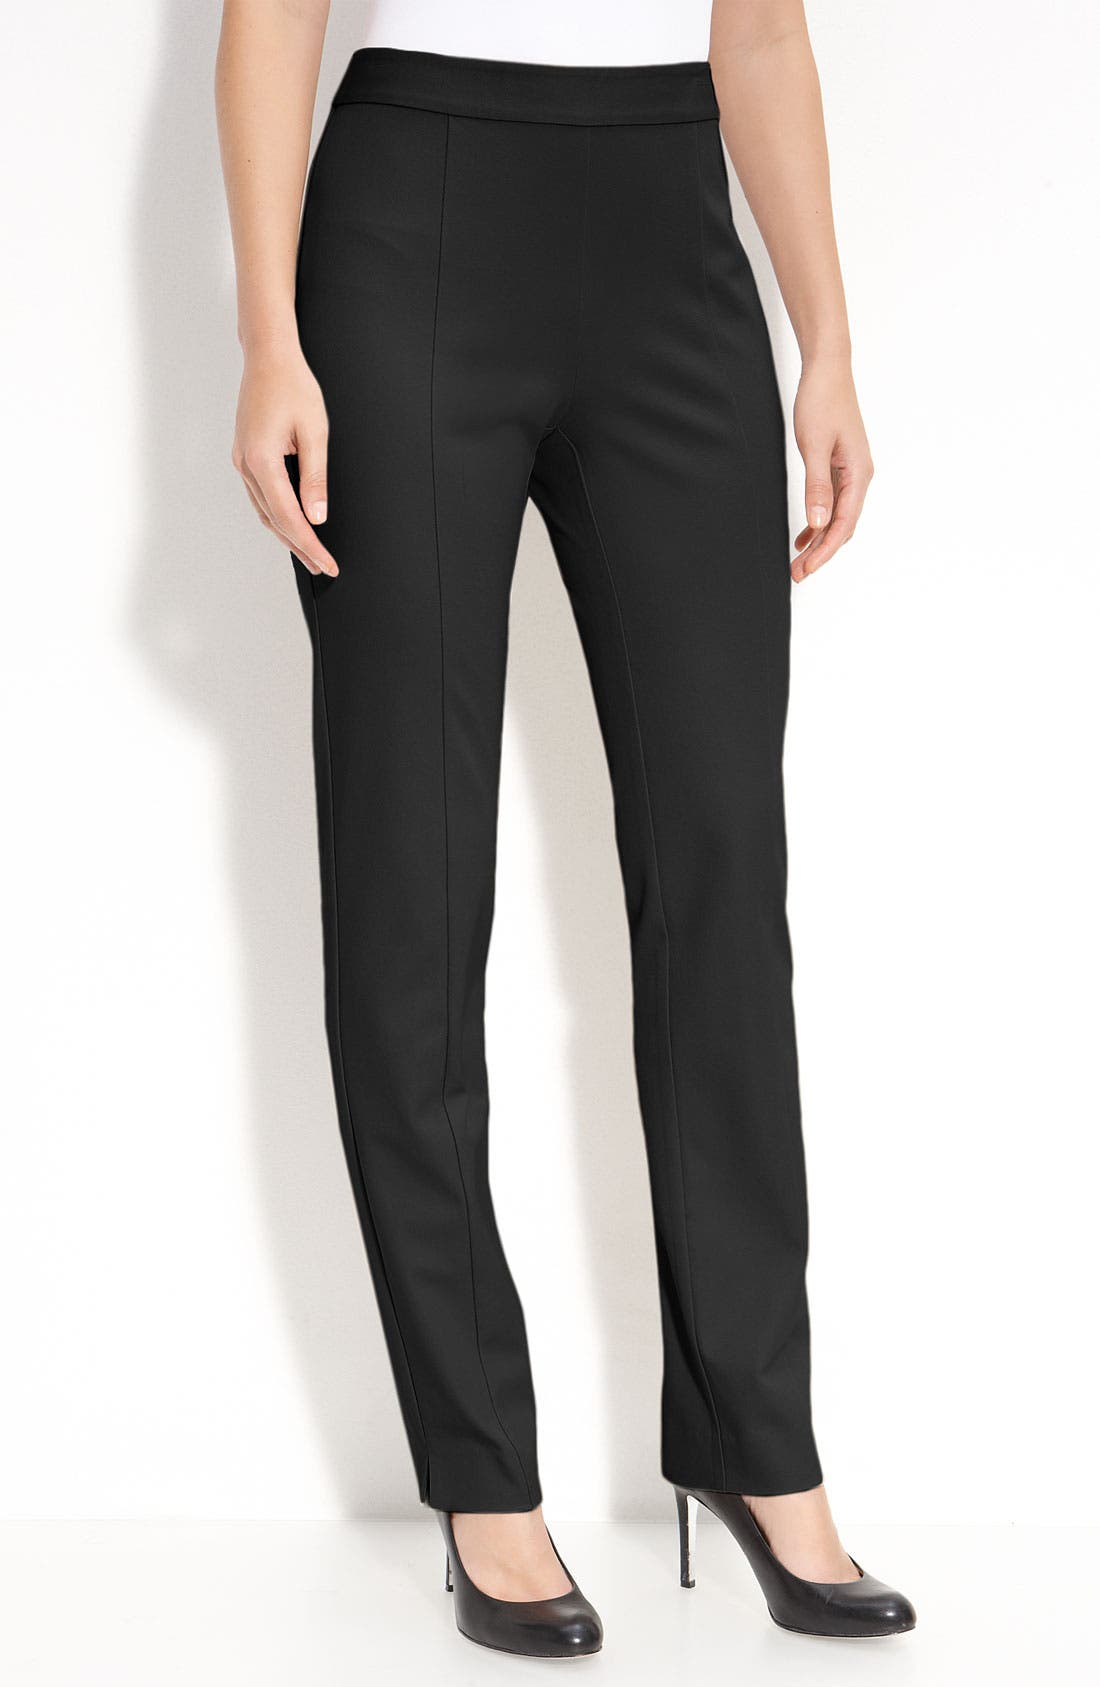 Alternate Image 1 Selected - Gallia Moda Stretch Cotton Pants